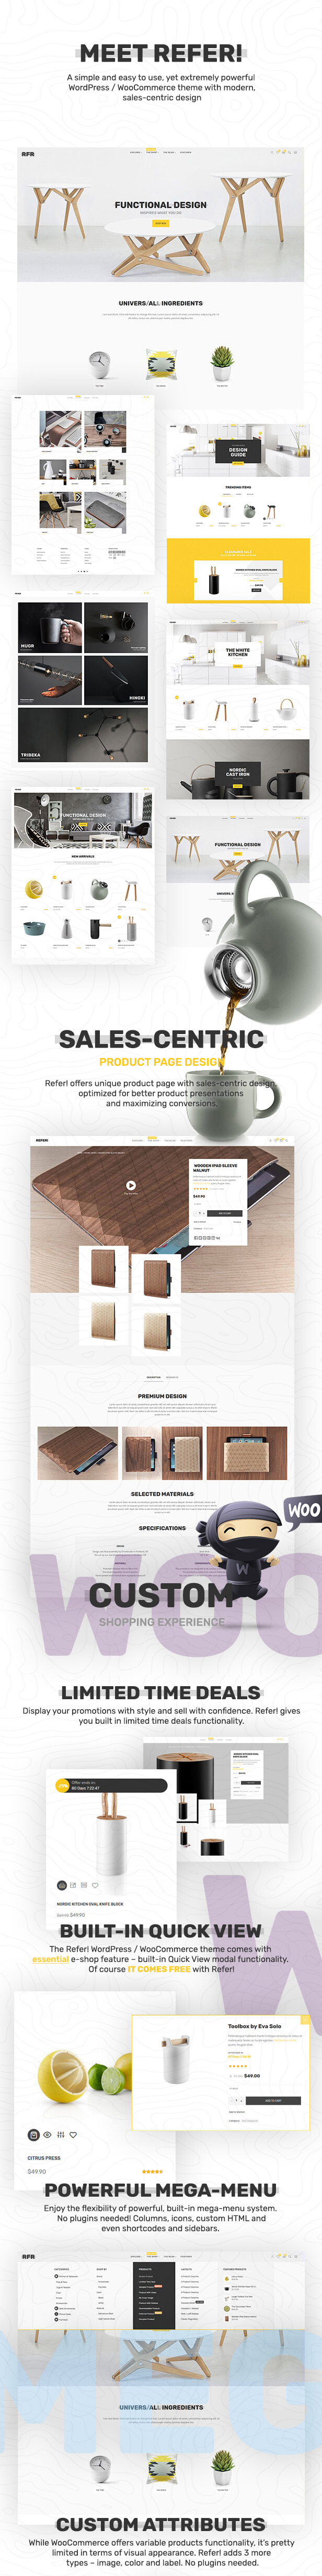 Refer - Premium WooCommerce Theme - 3